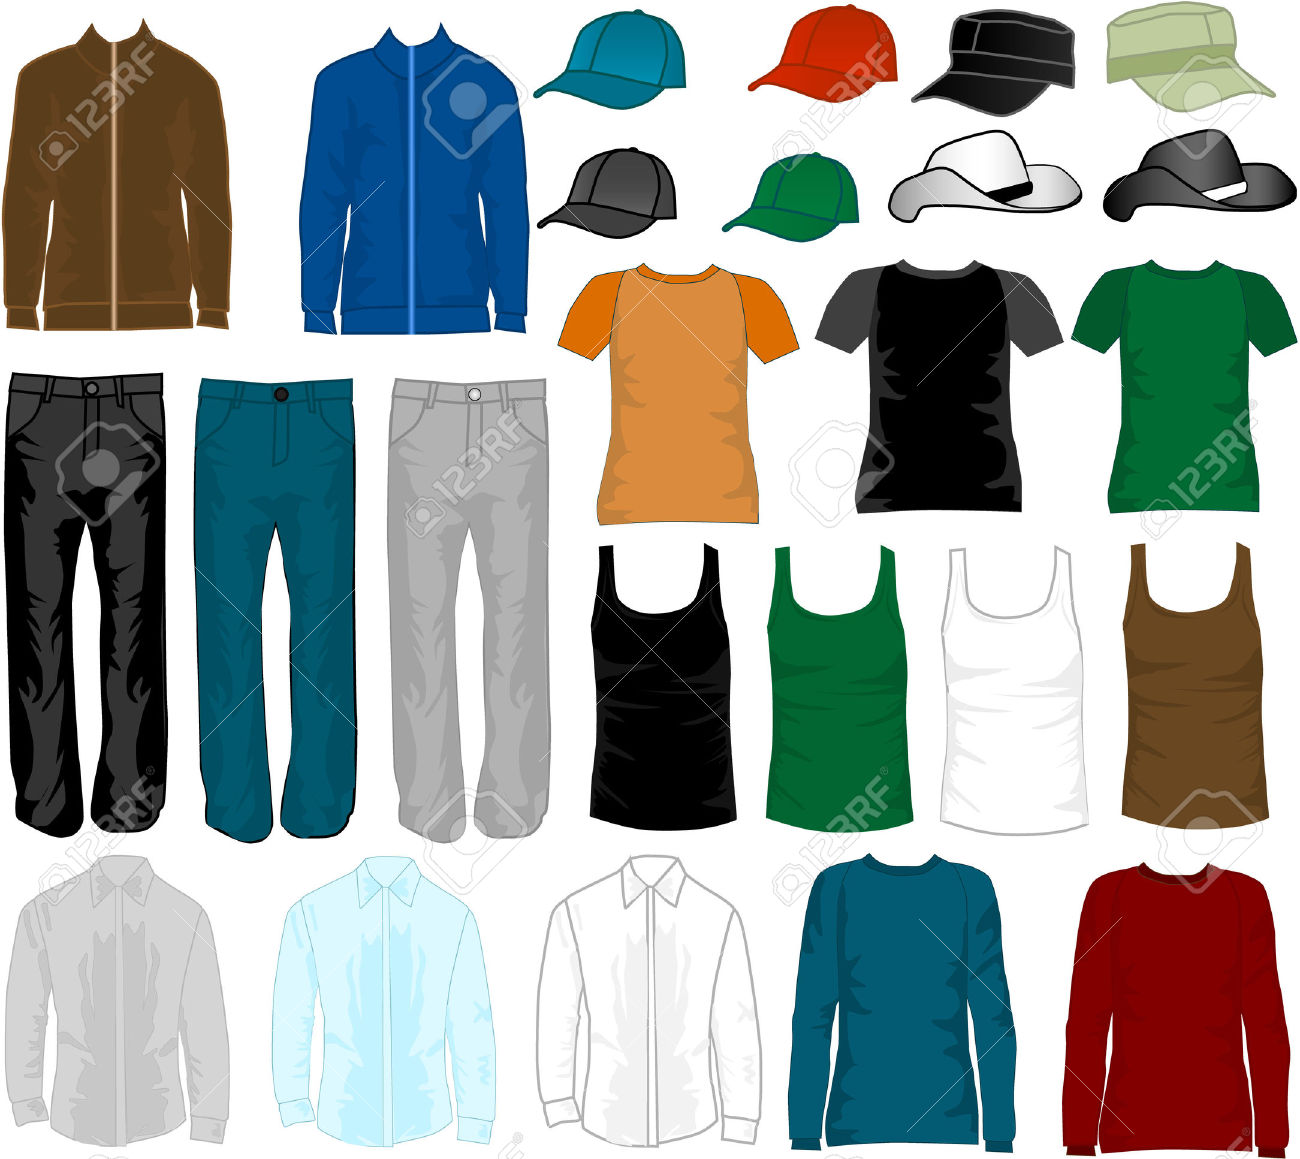 s clothing clipart clipground